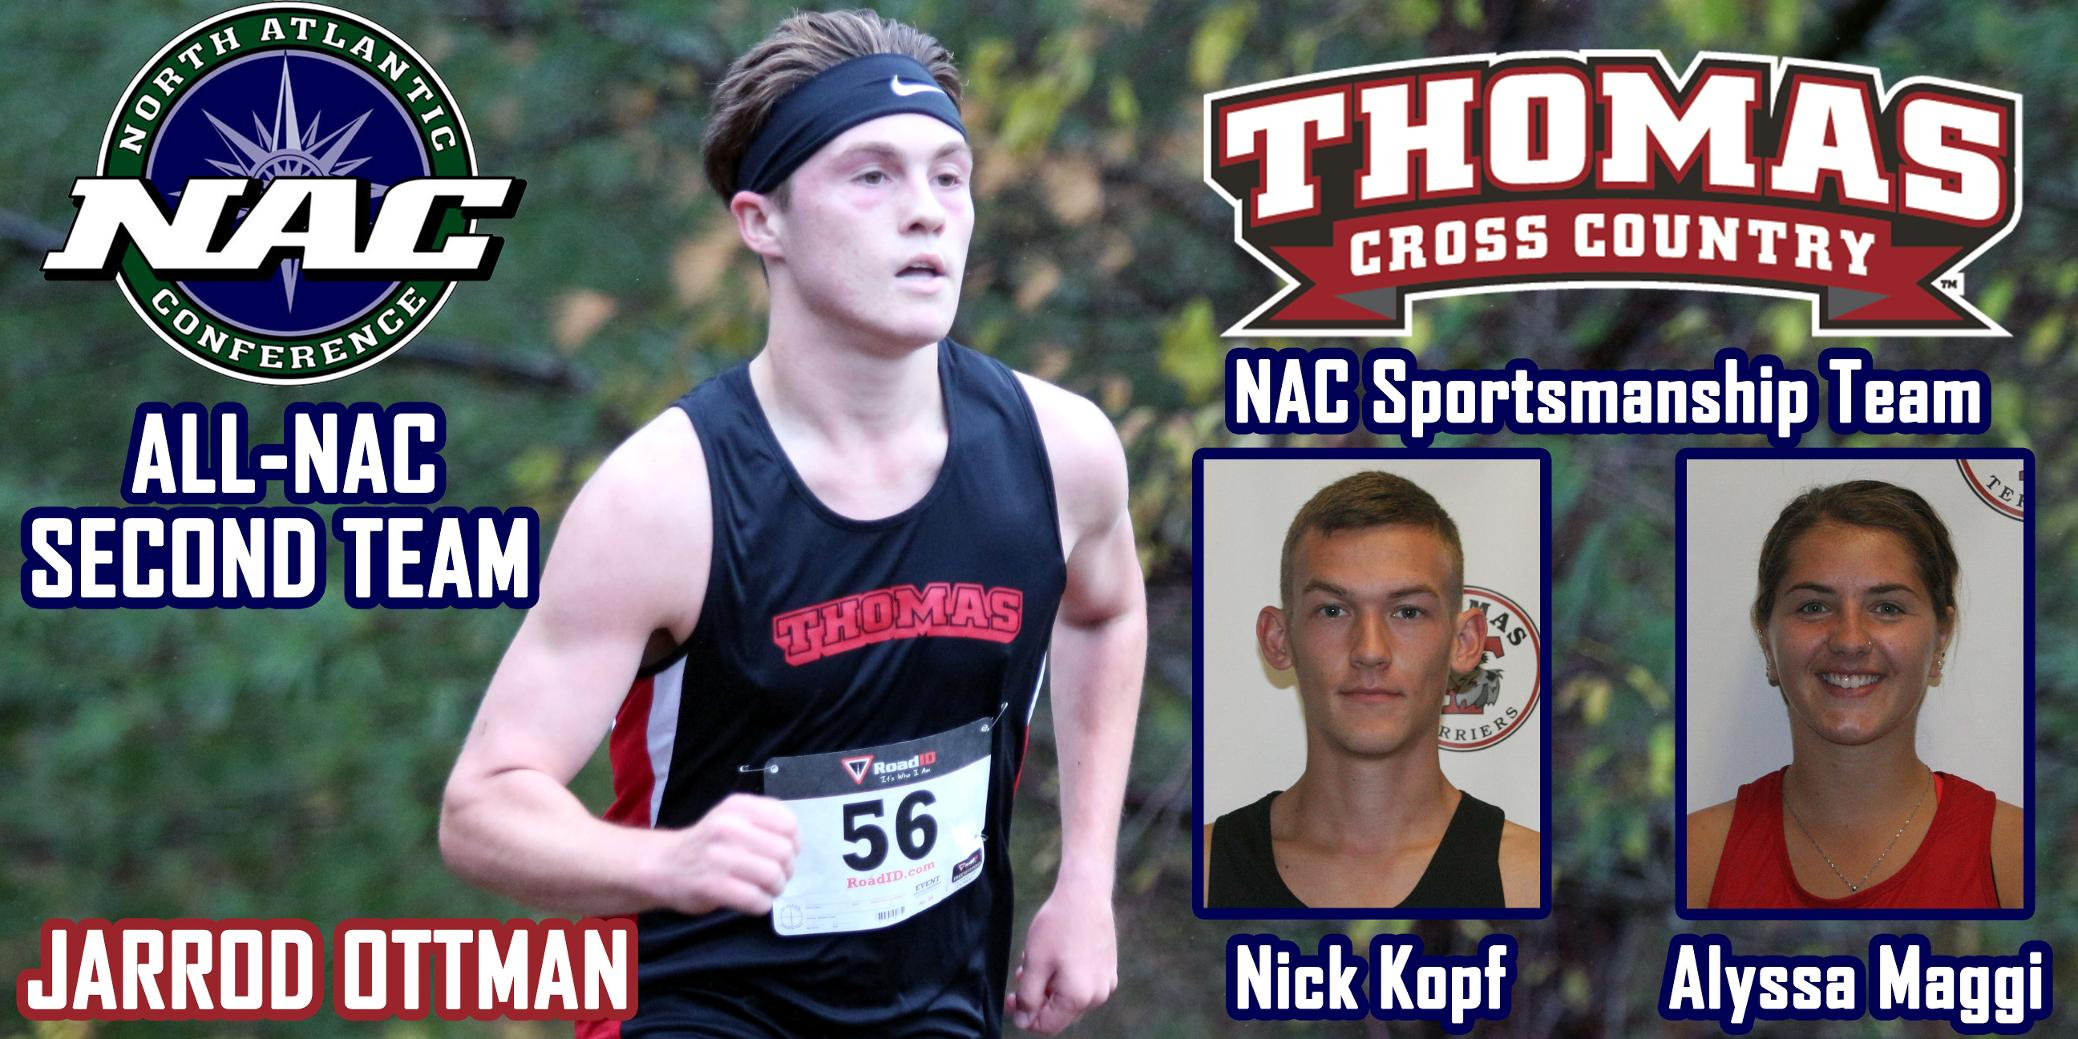 Ottman Named to All-NAC Second Team